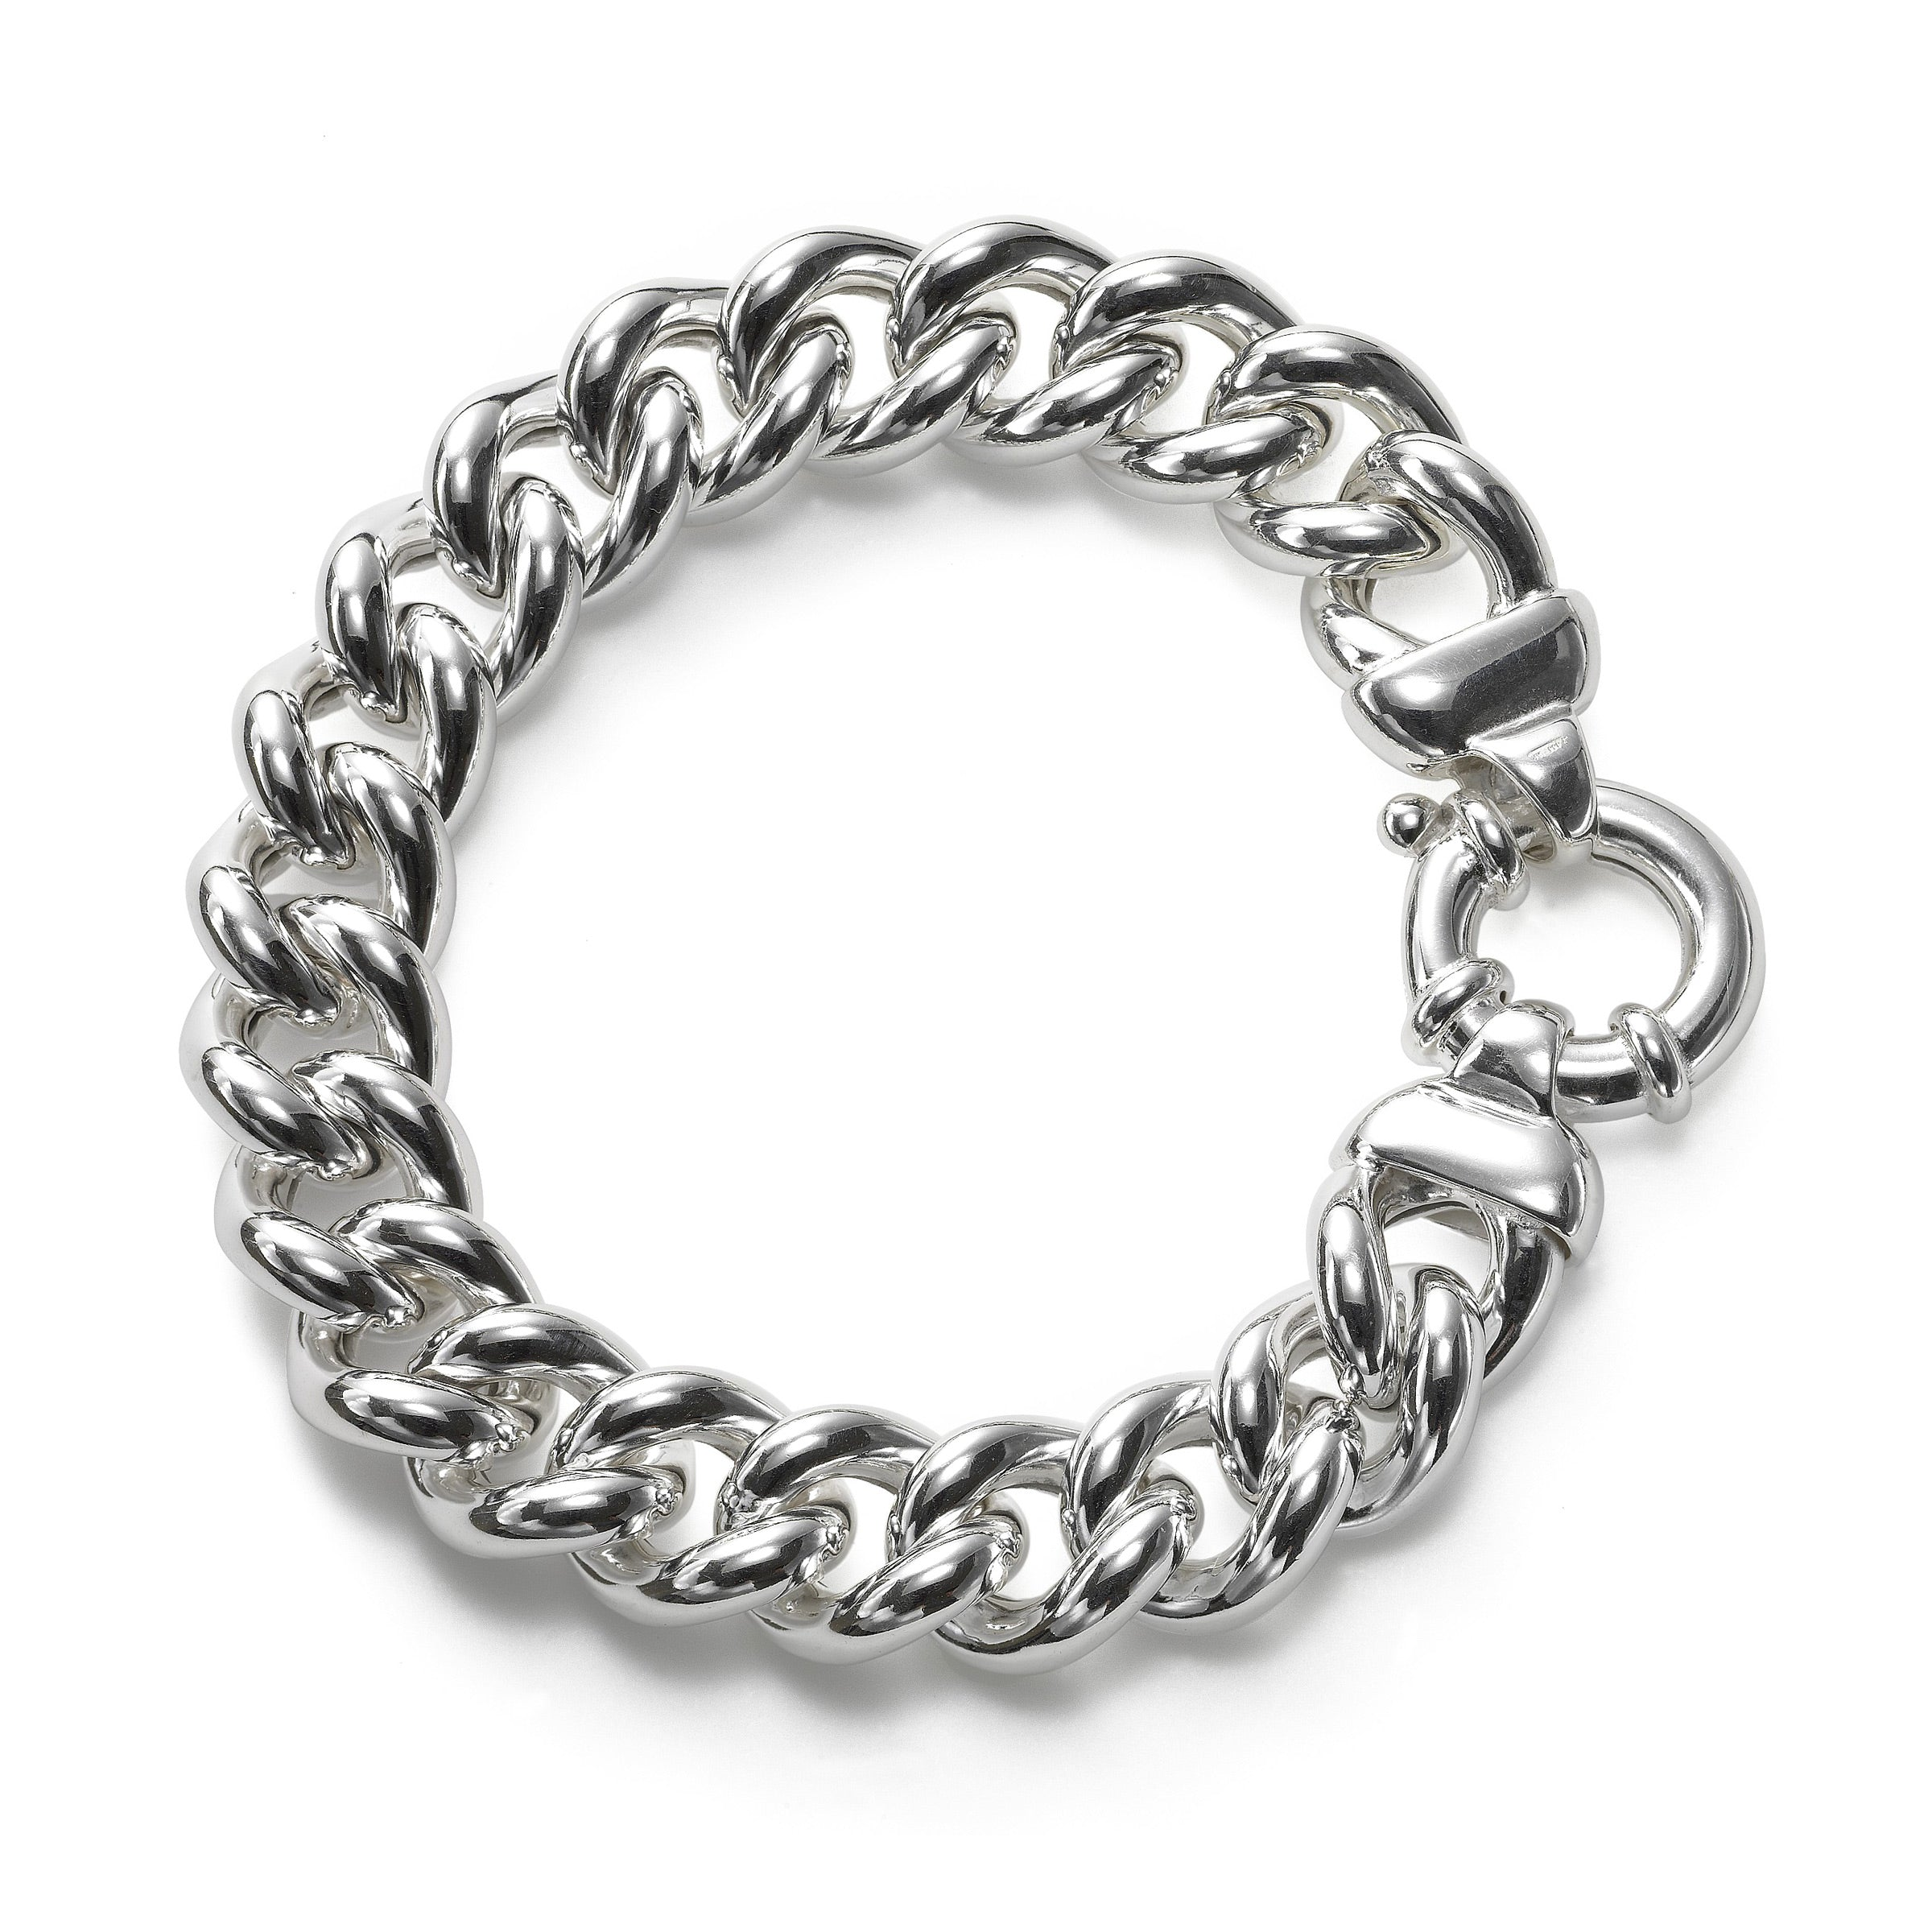 Shiny and Bold Link Bracelet, Sterling Silver